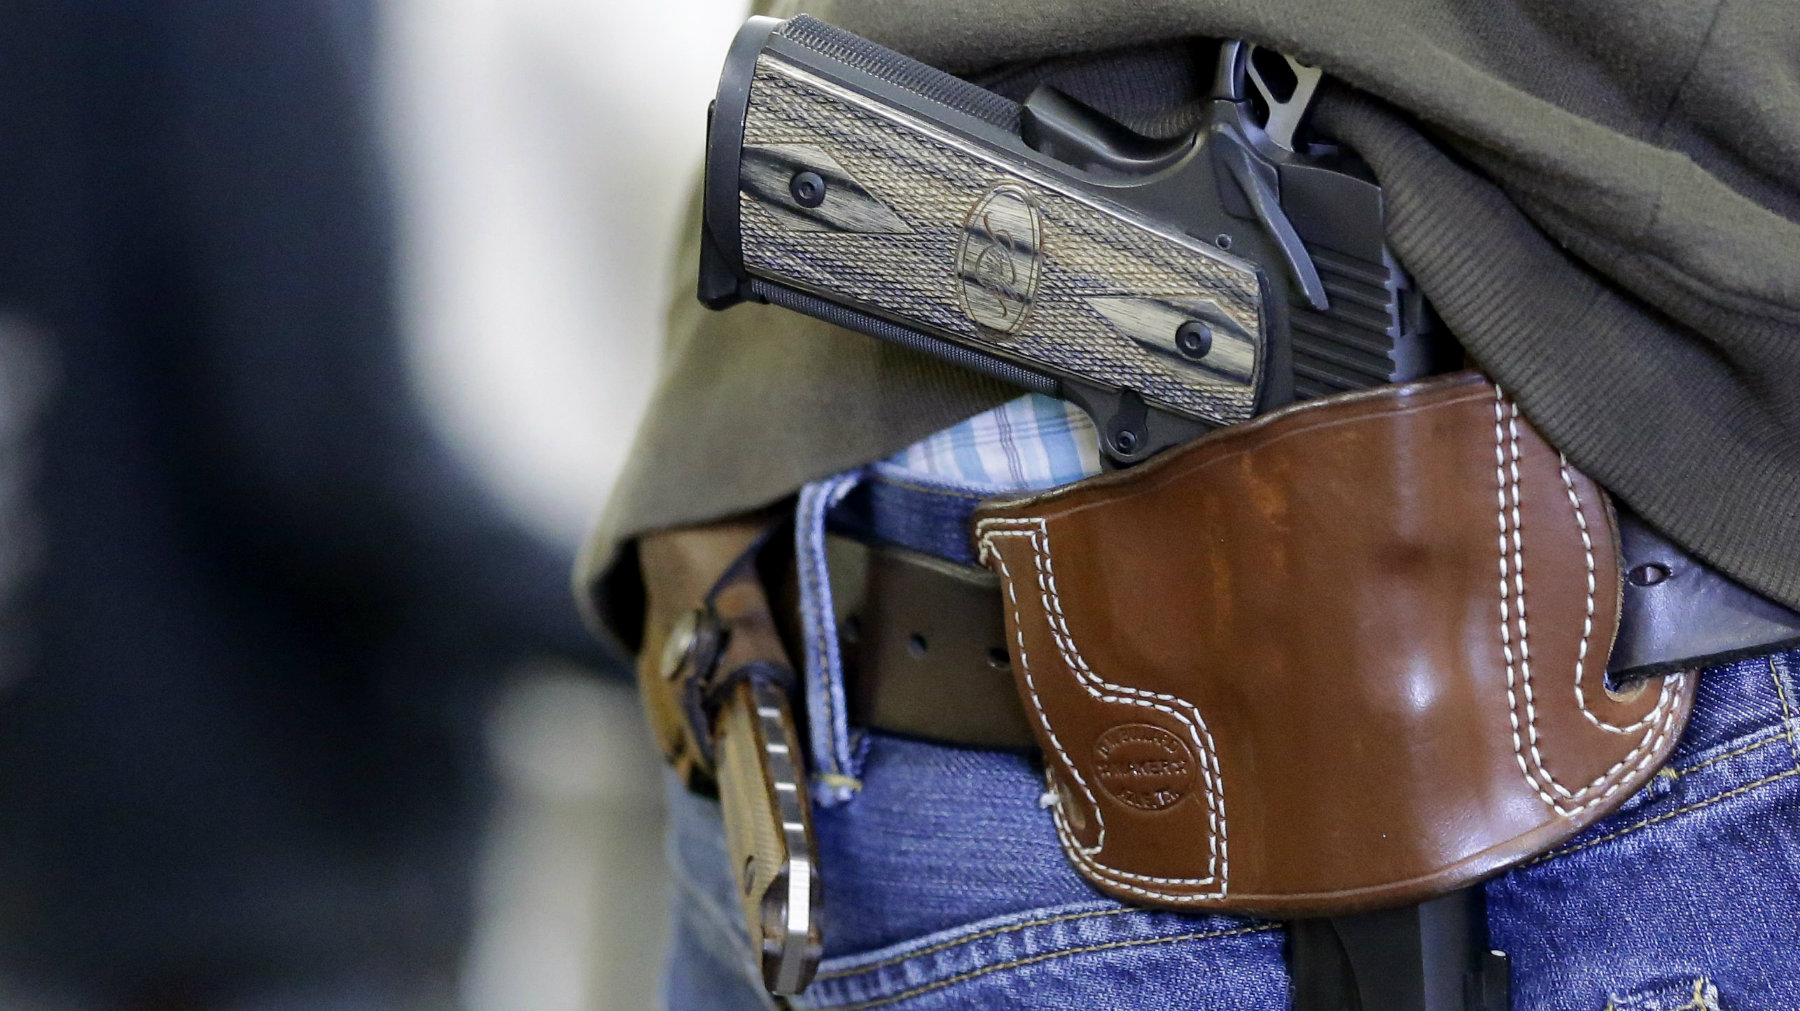 HOLD FOR MOVEMENT WITH STORY--Matt Nutt wears his gun on his hip as he works at the Spring Guns and Ammo store Monday, Jan. 4, 2016, in Spring, Texas. (AP Photo/David J. Phillip)